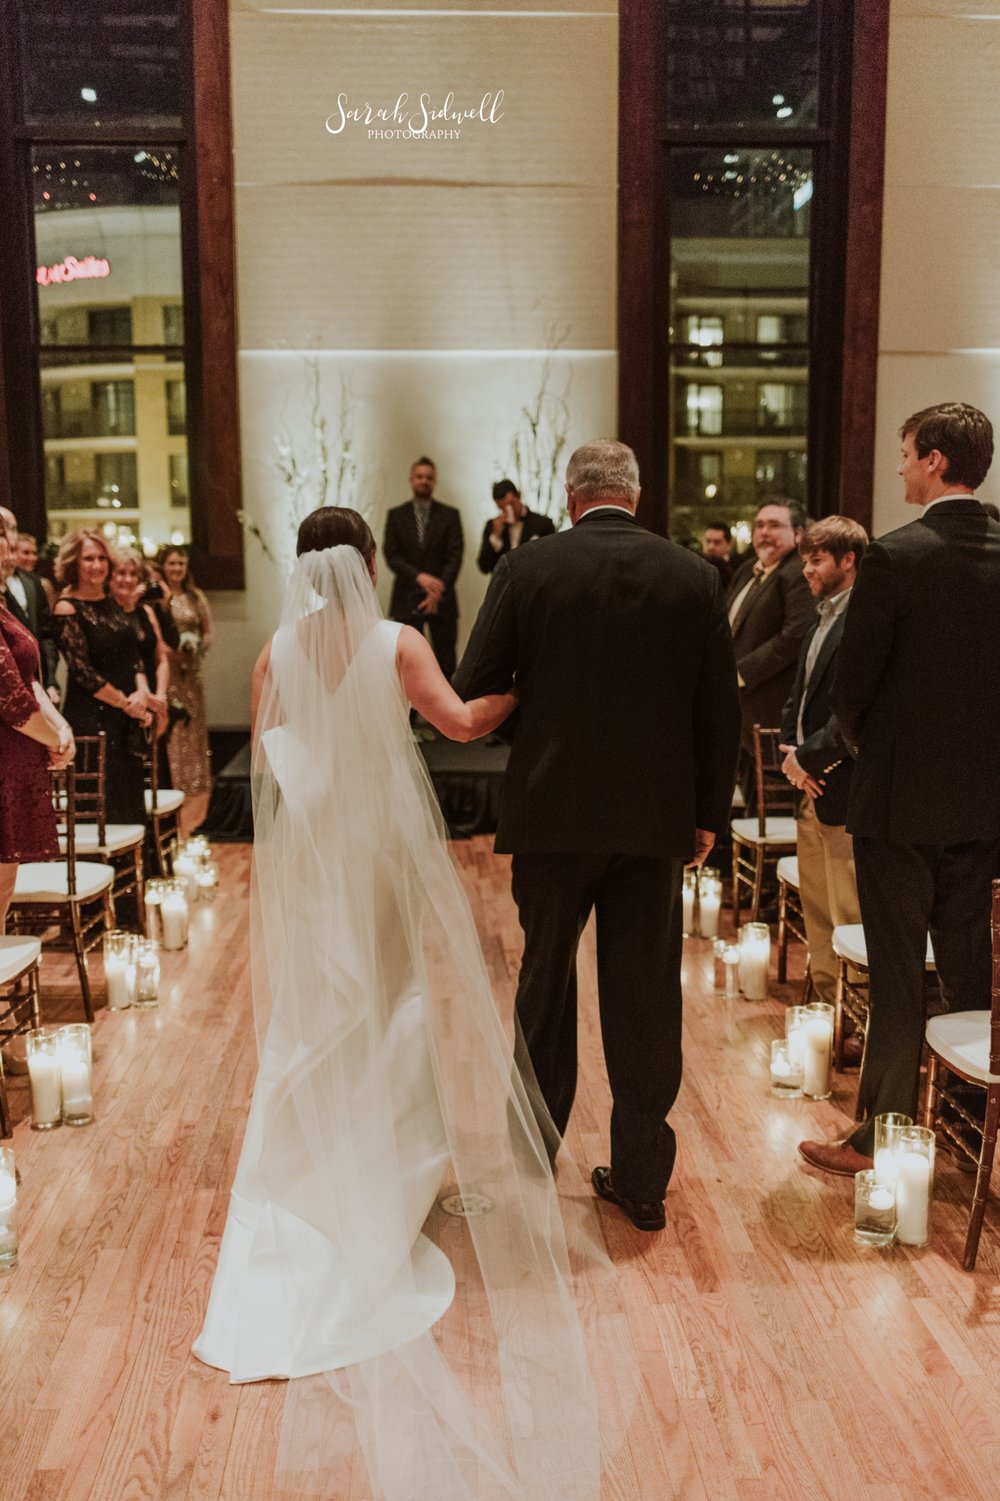 A bride walks down the aisle | Sarah Sidwell Photography | The Bell Tower